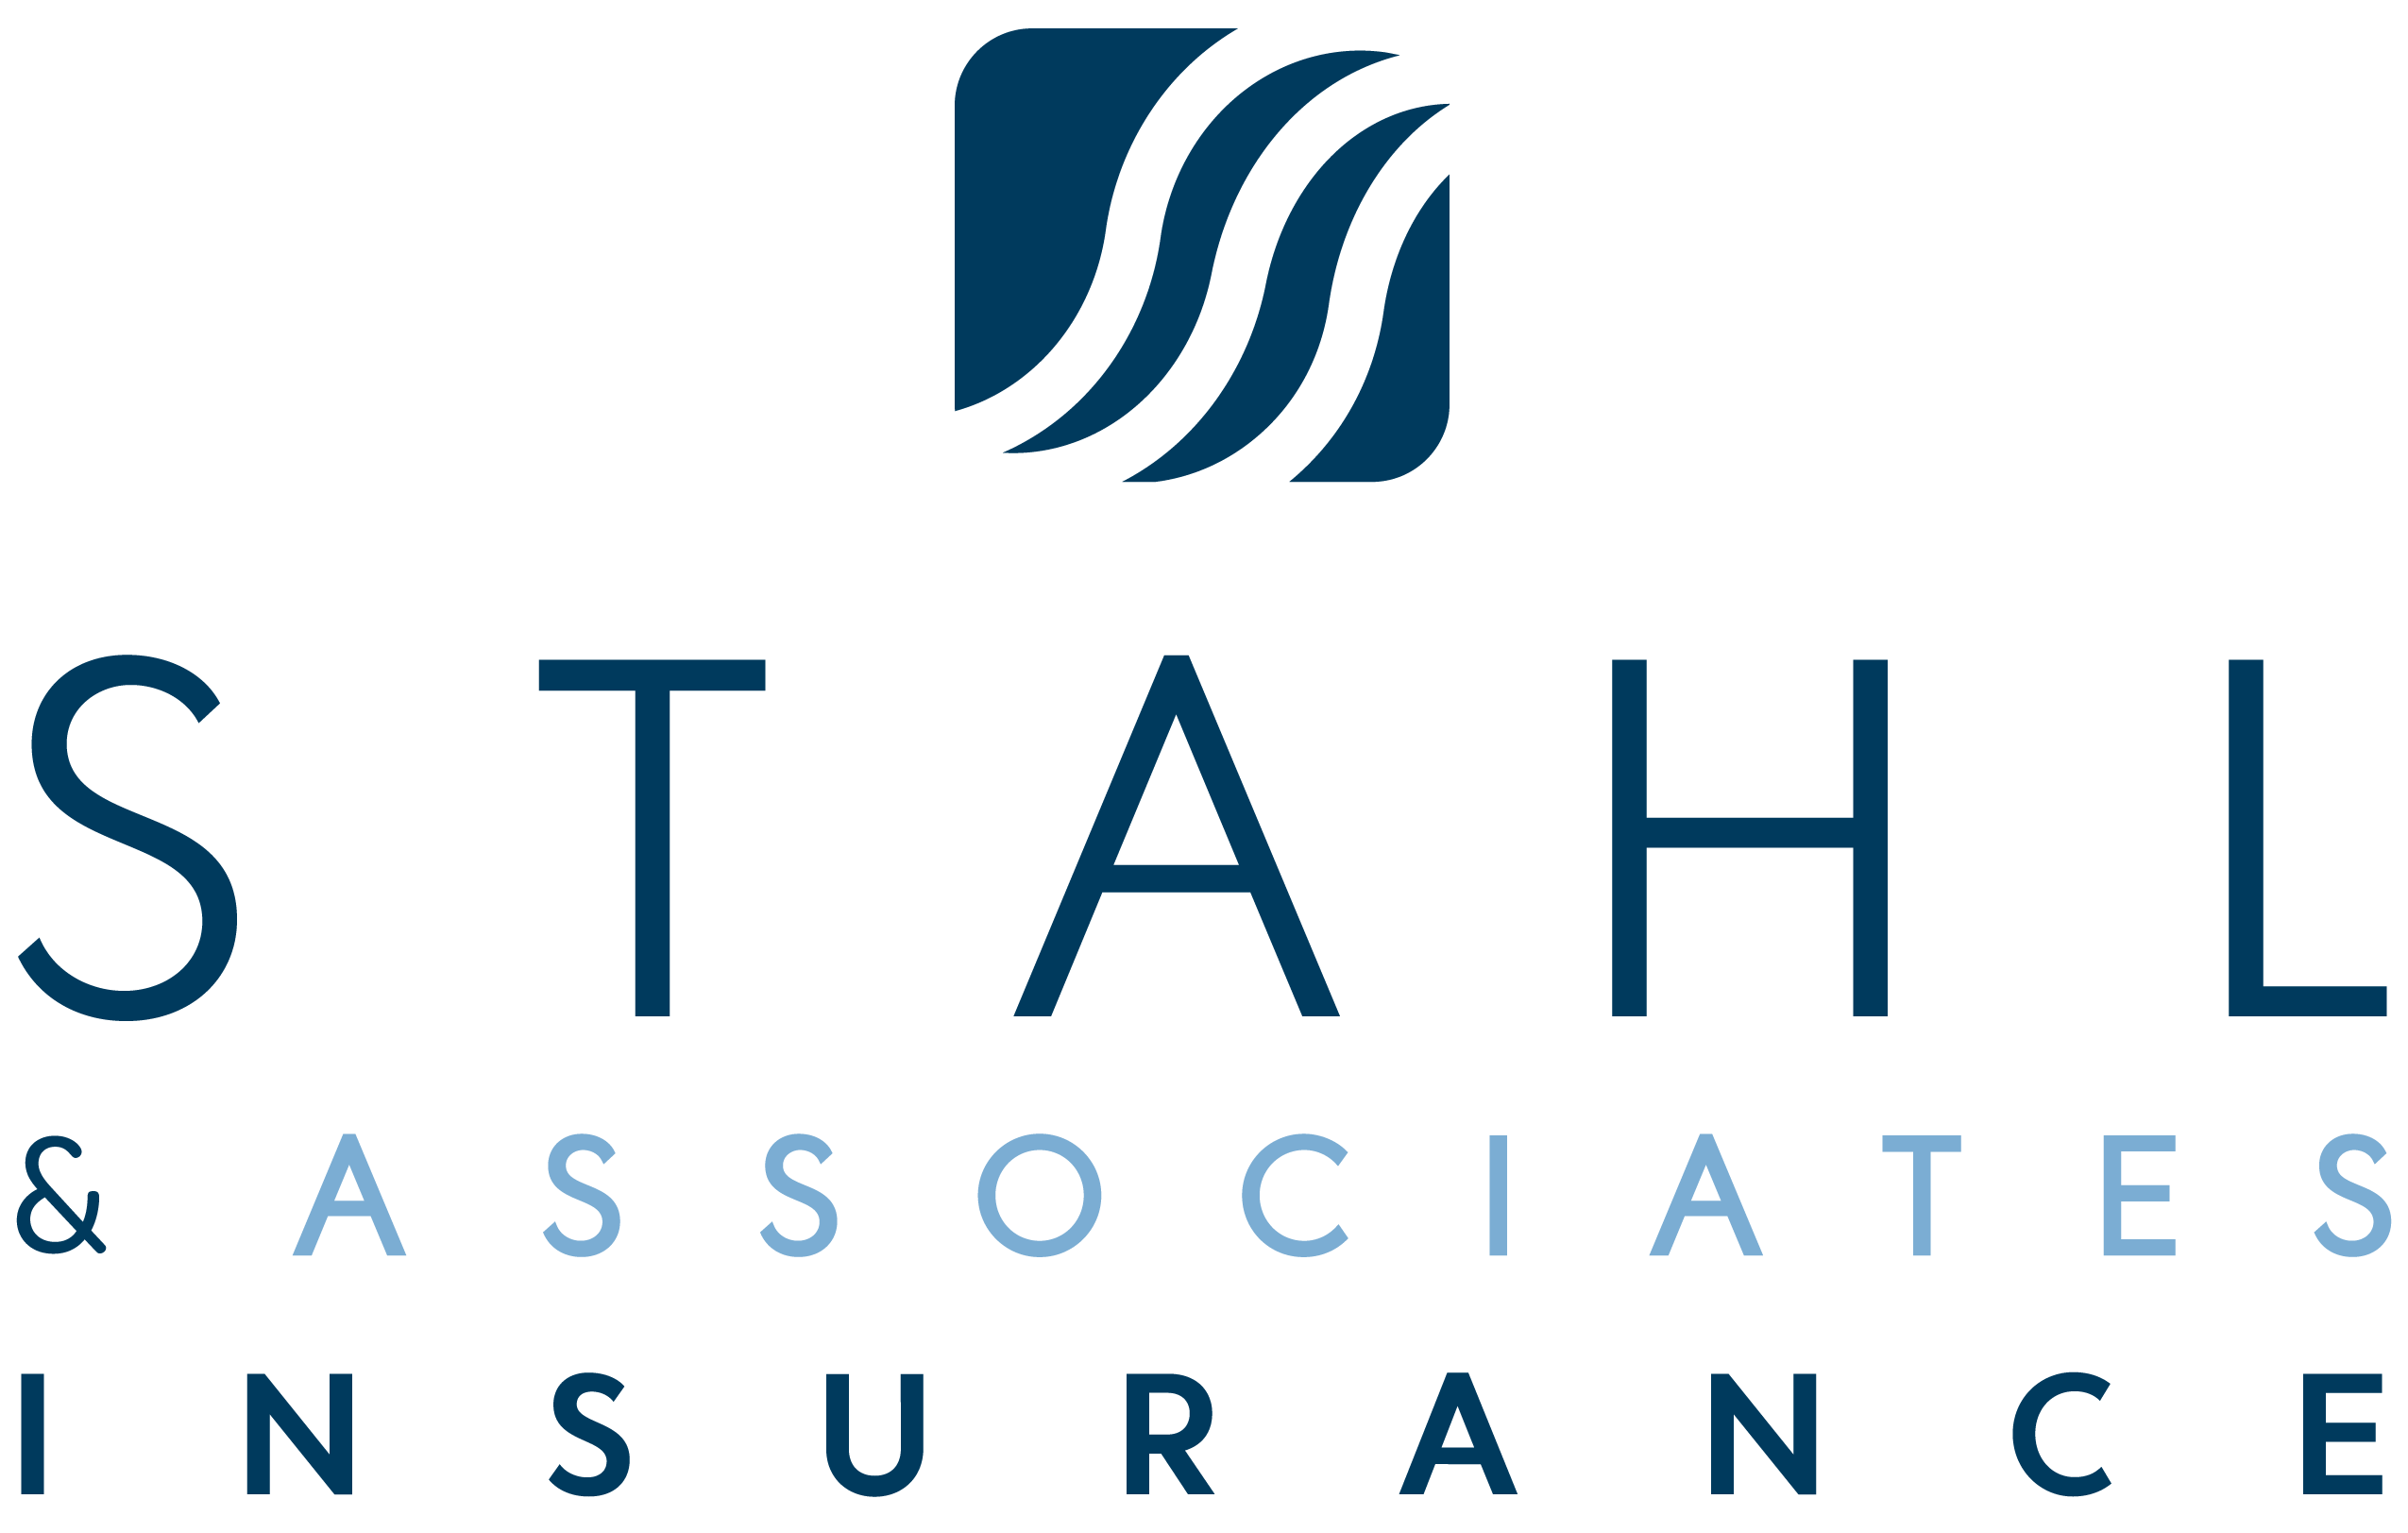 Stahl & Associates Insurance Inc Company Logo